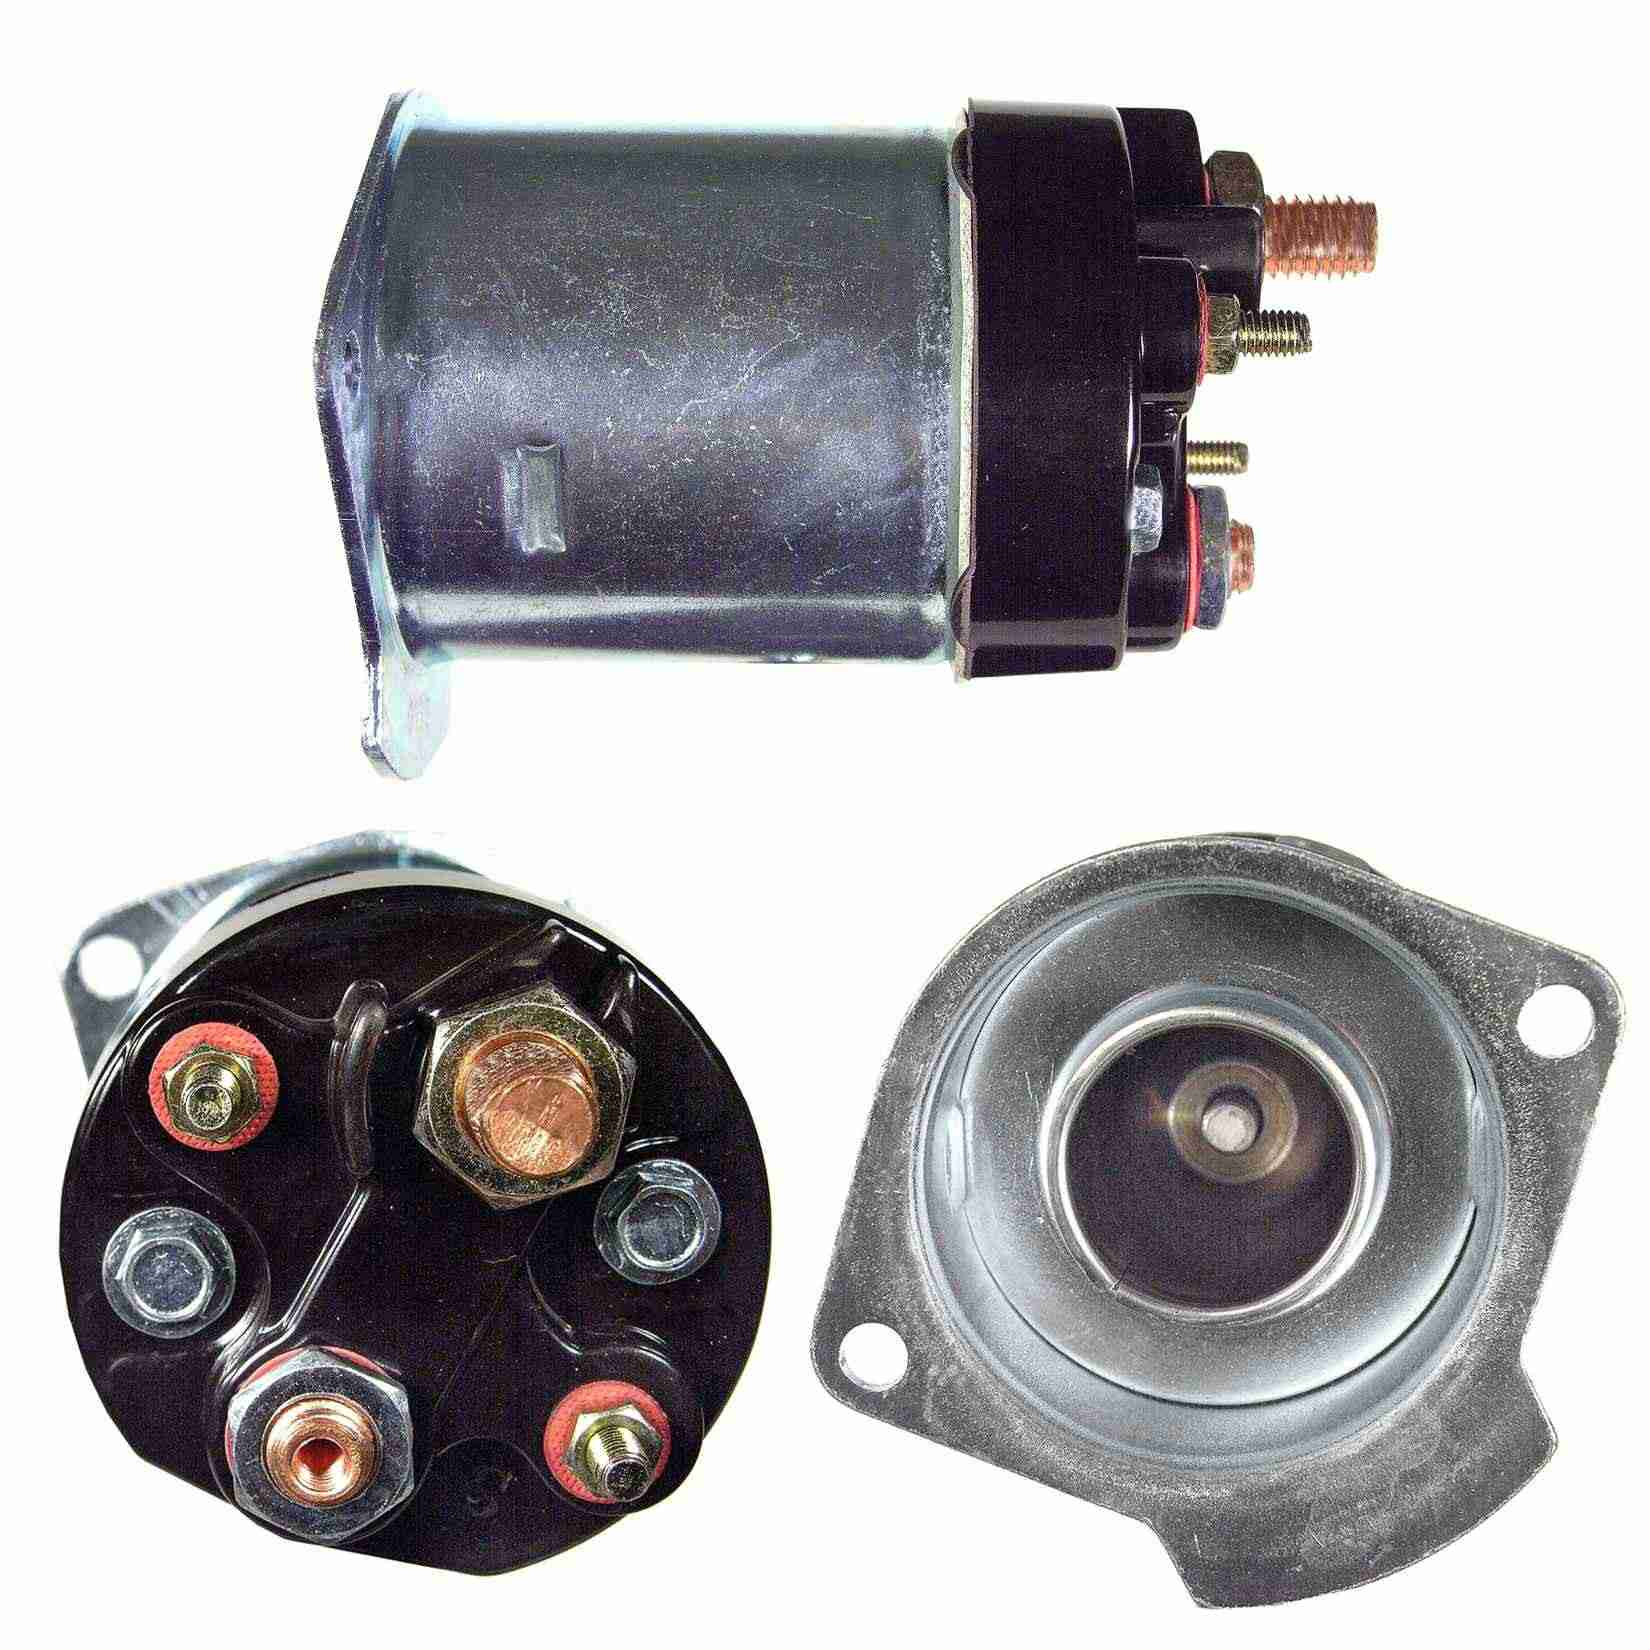 AIRTEX ENG MGMT SYSTEMS(DELETE V24A01R1) - O.E. Replacement Starter Solenoid - AEM 1M1028